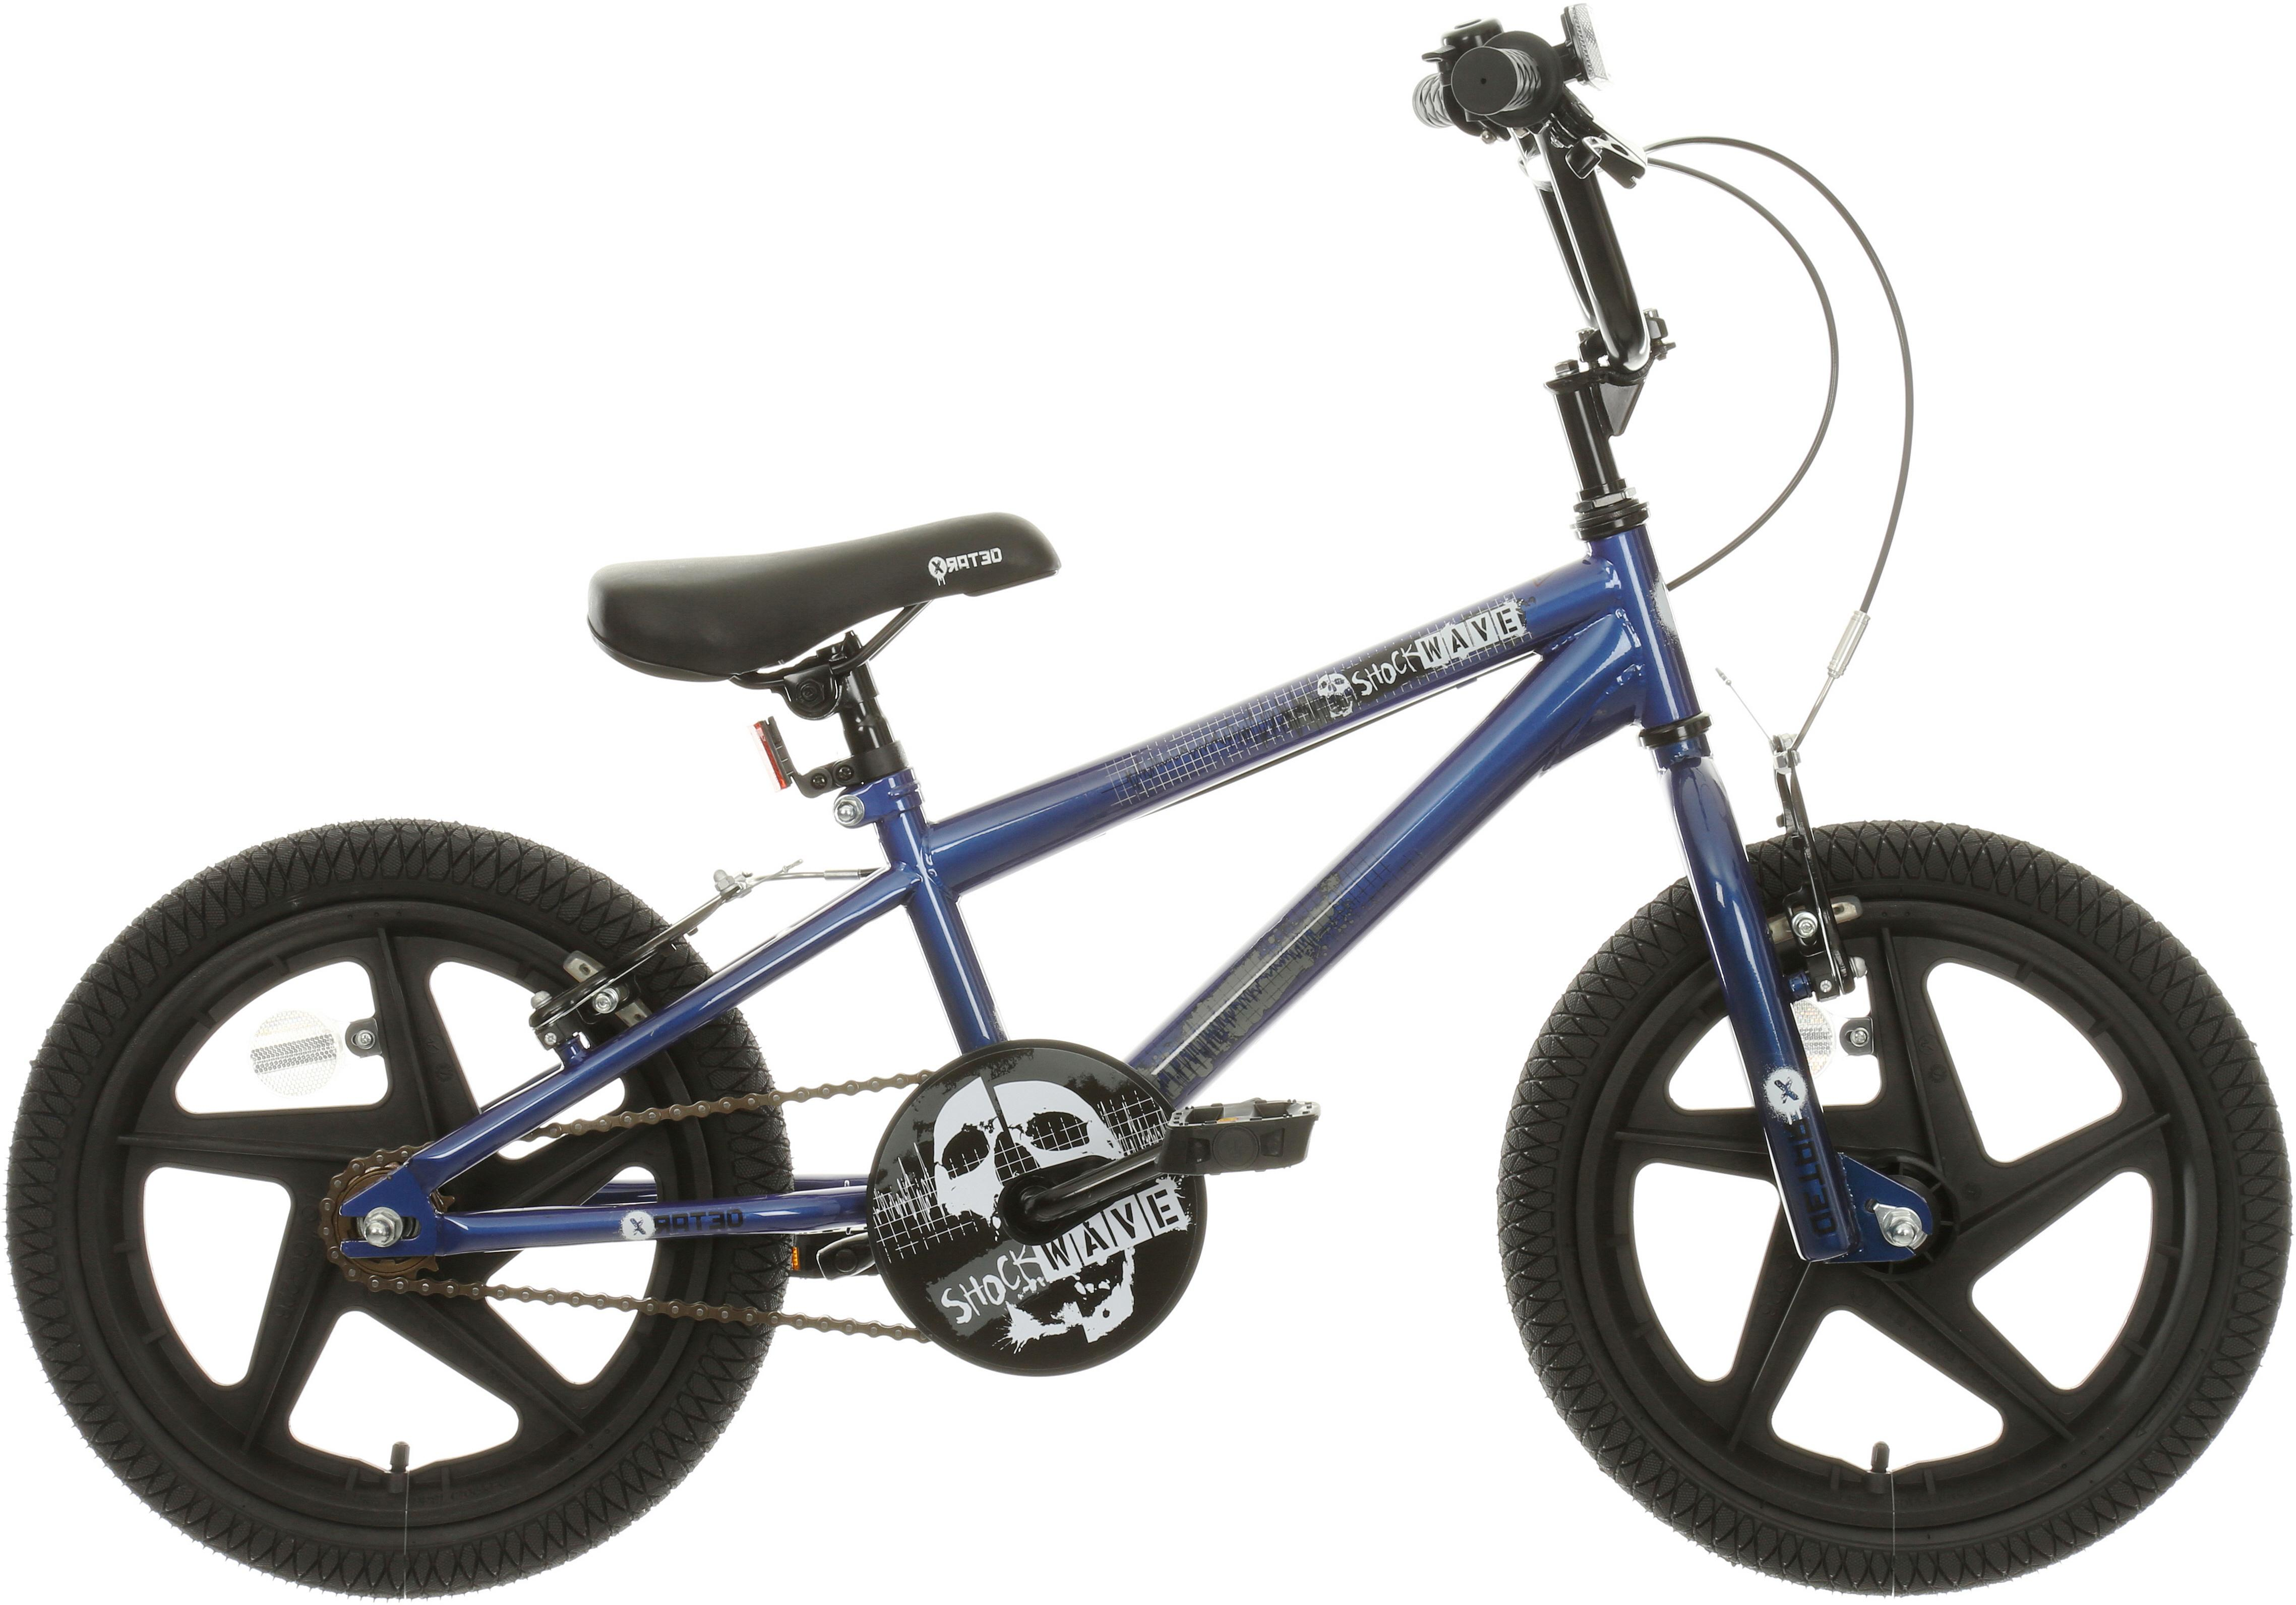 X-Rated Shockwave Kids BMX Bike - 16 inch Wheel